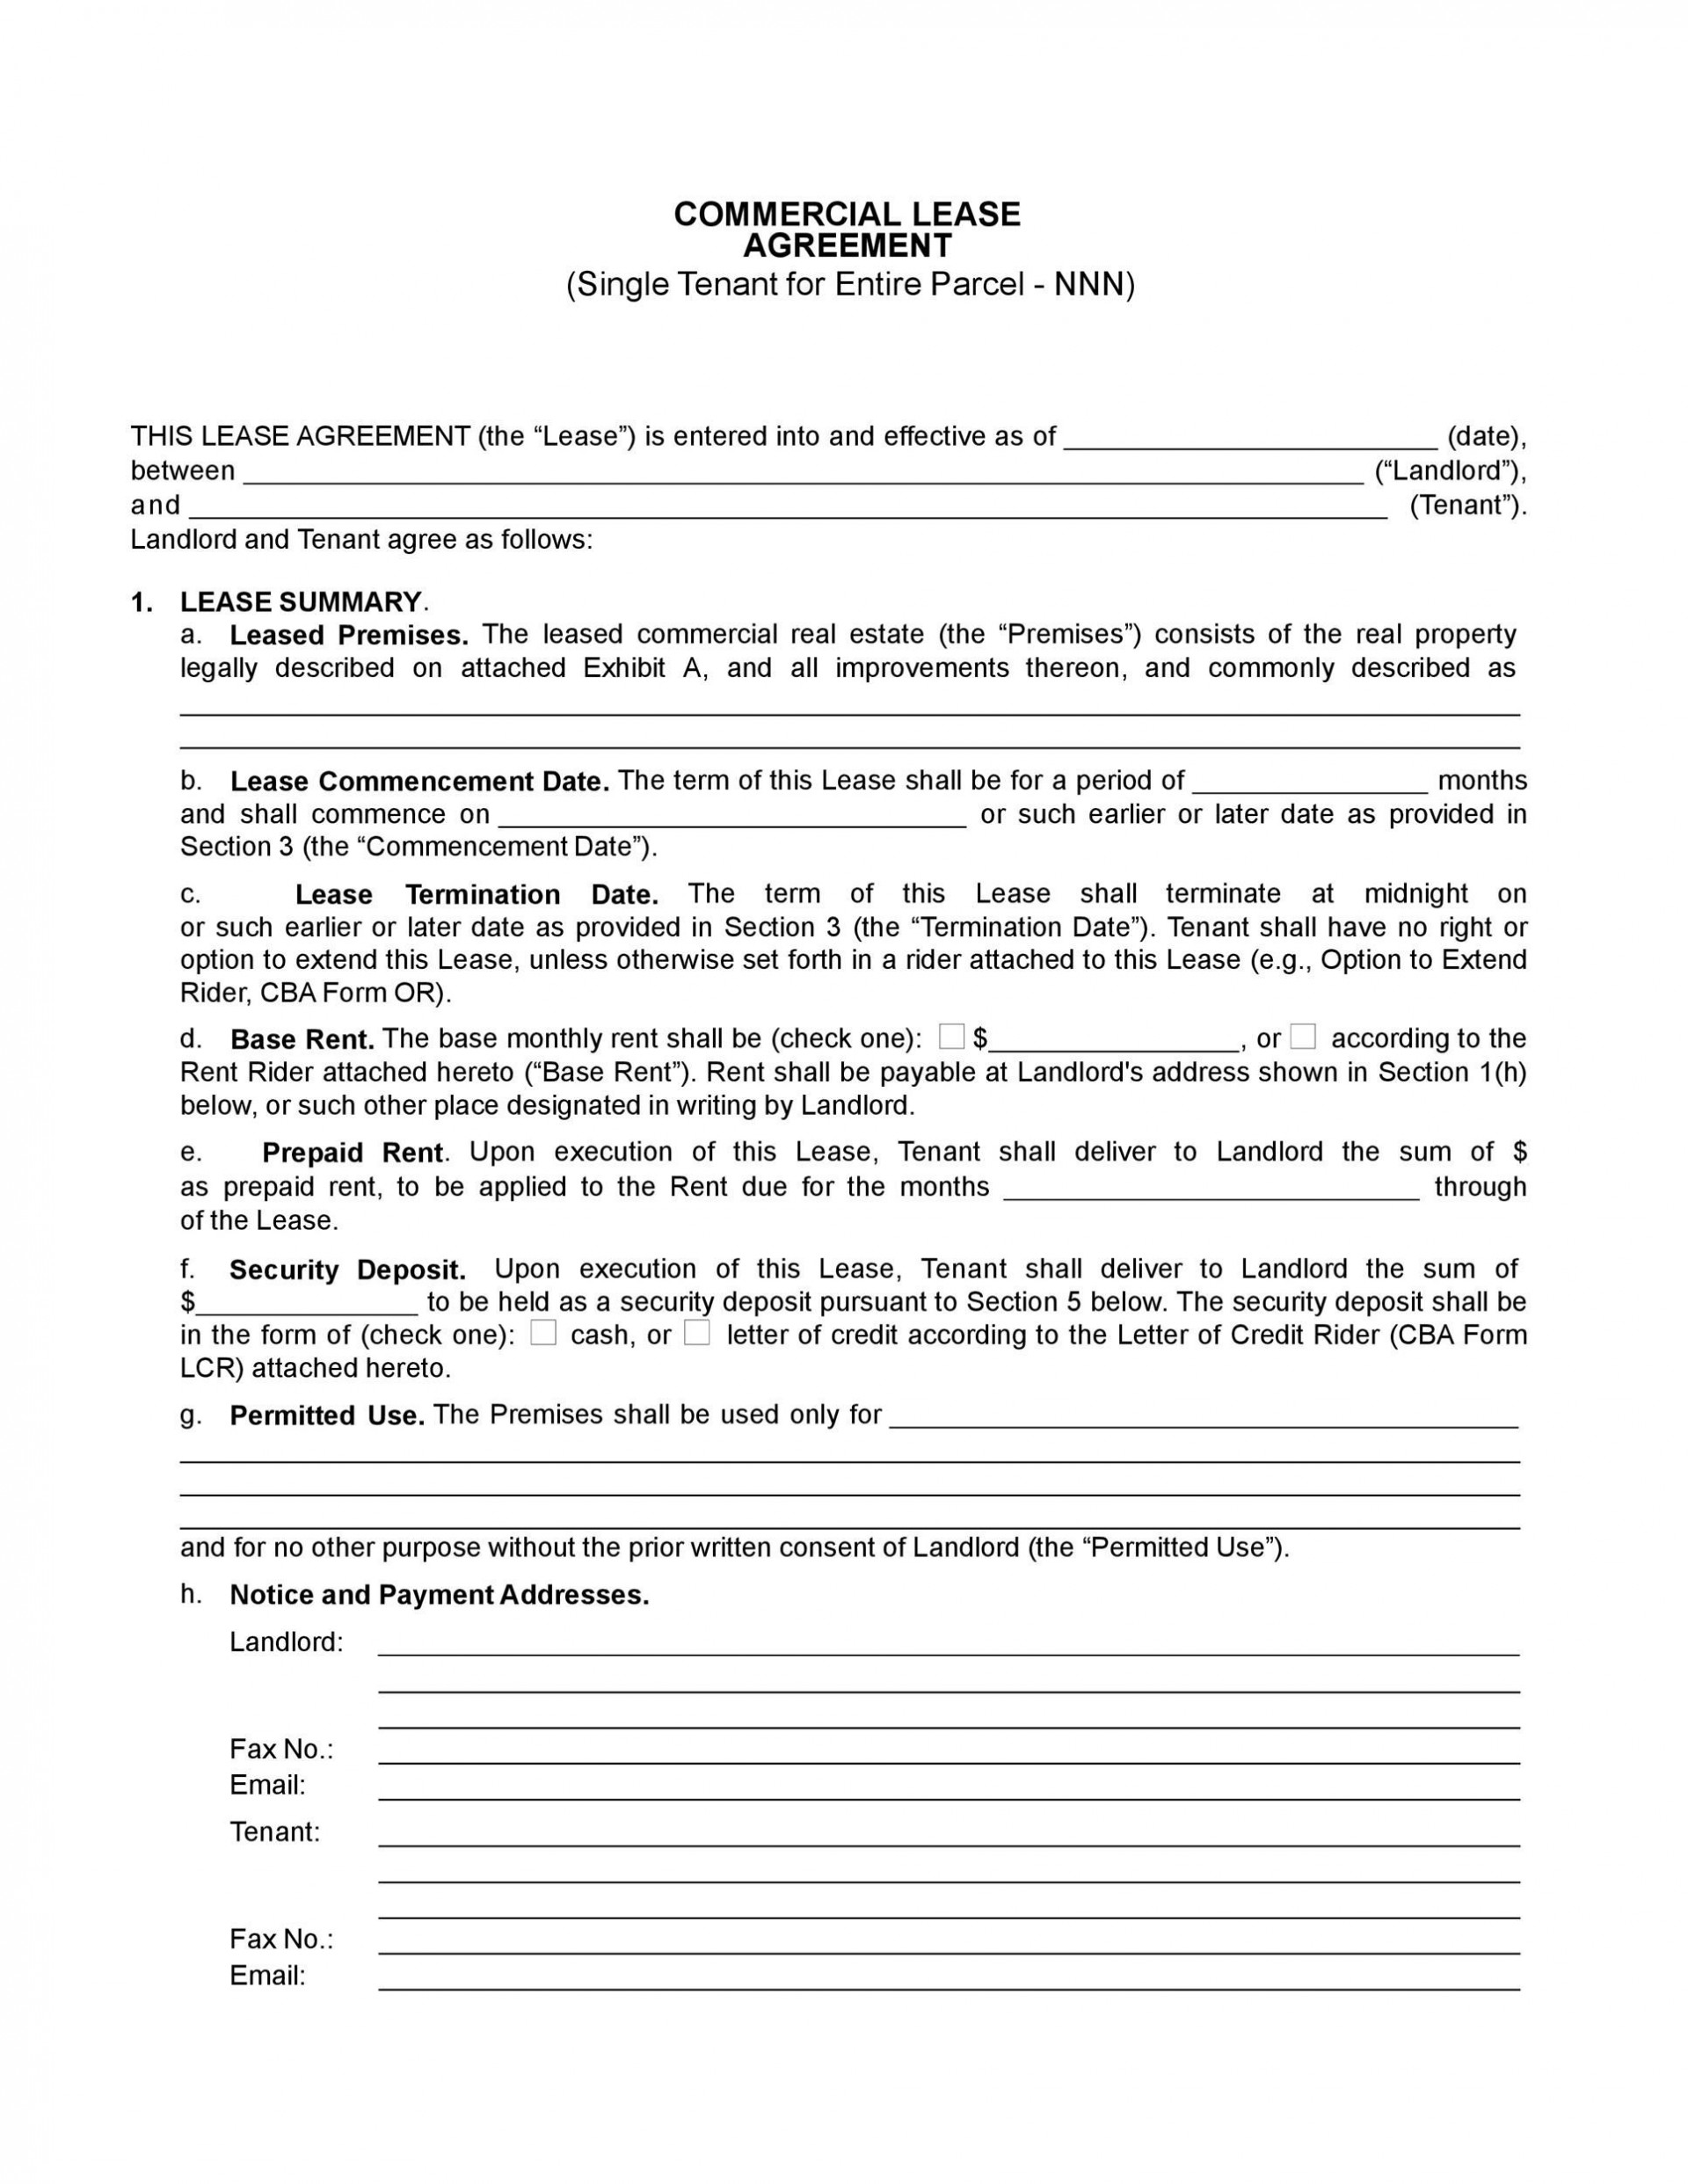 006 Impressive Free Commercial Lease Agreement Template Australia Inspiration  Queensland Download1920